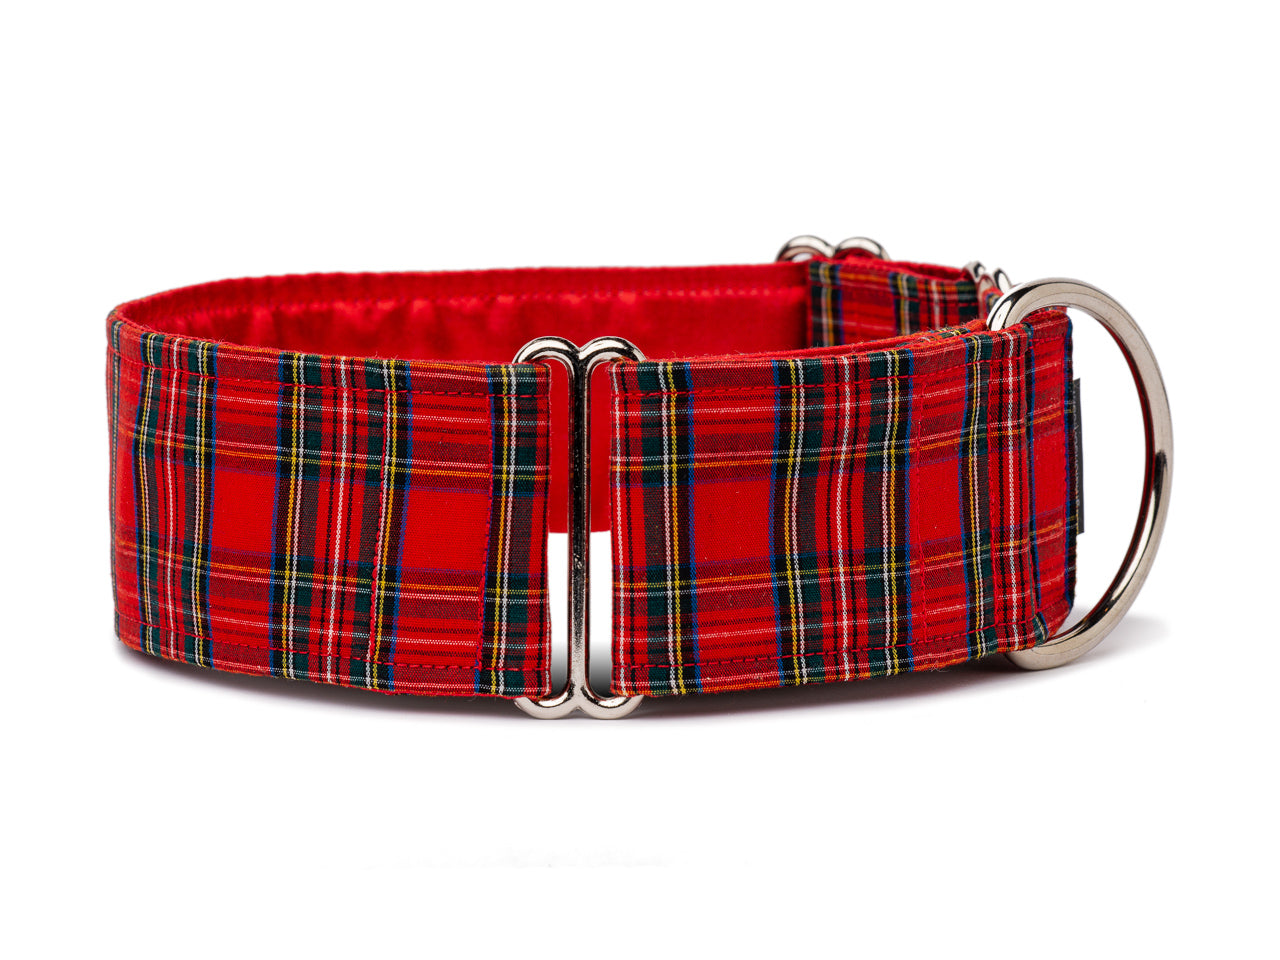 Classic red tartan is always in season for the stylish and sophisticated pooch!